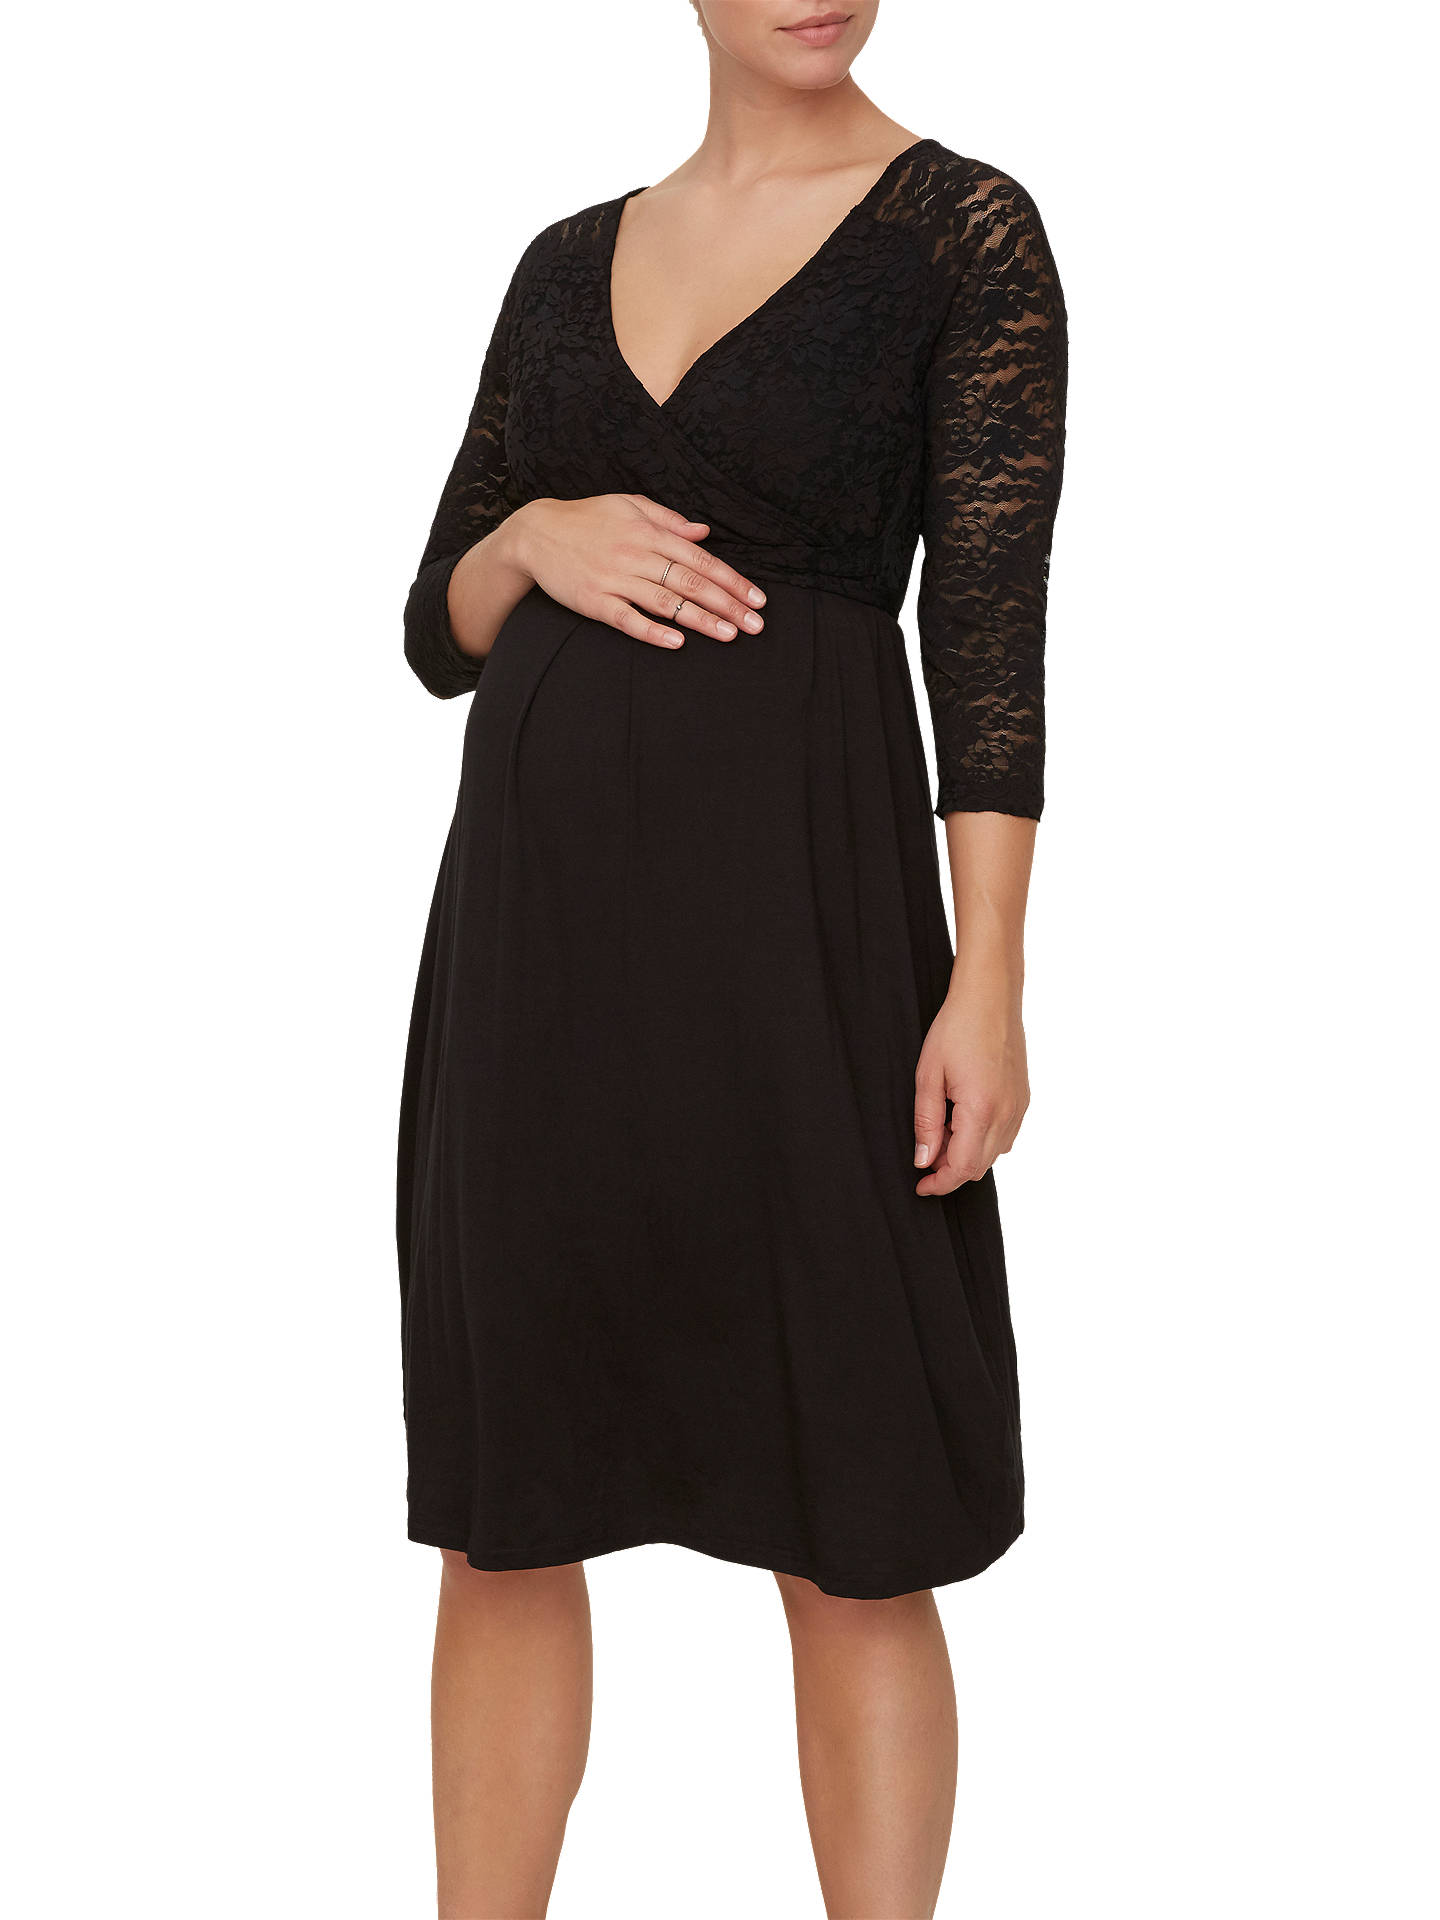 BuyMamalicious Winnie Lace Detail Jersey Maternity Dress, Black, S Online at johnlewis.com